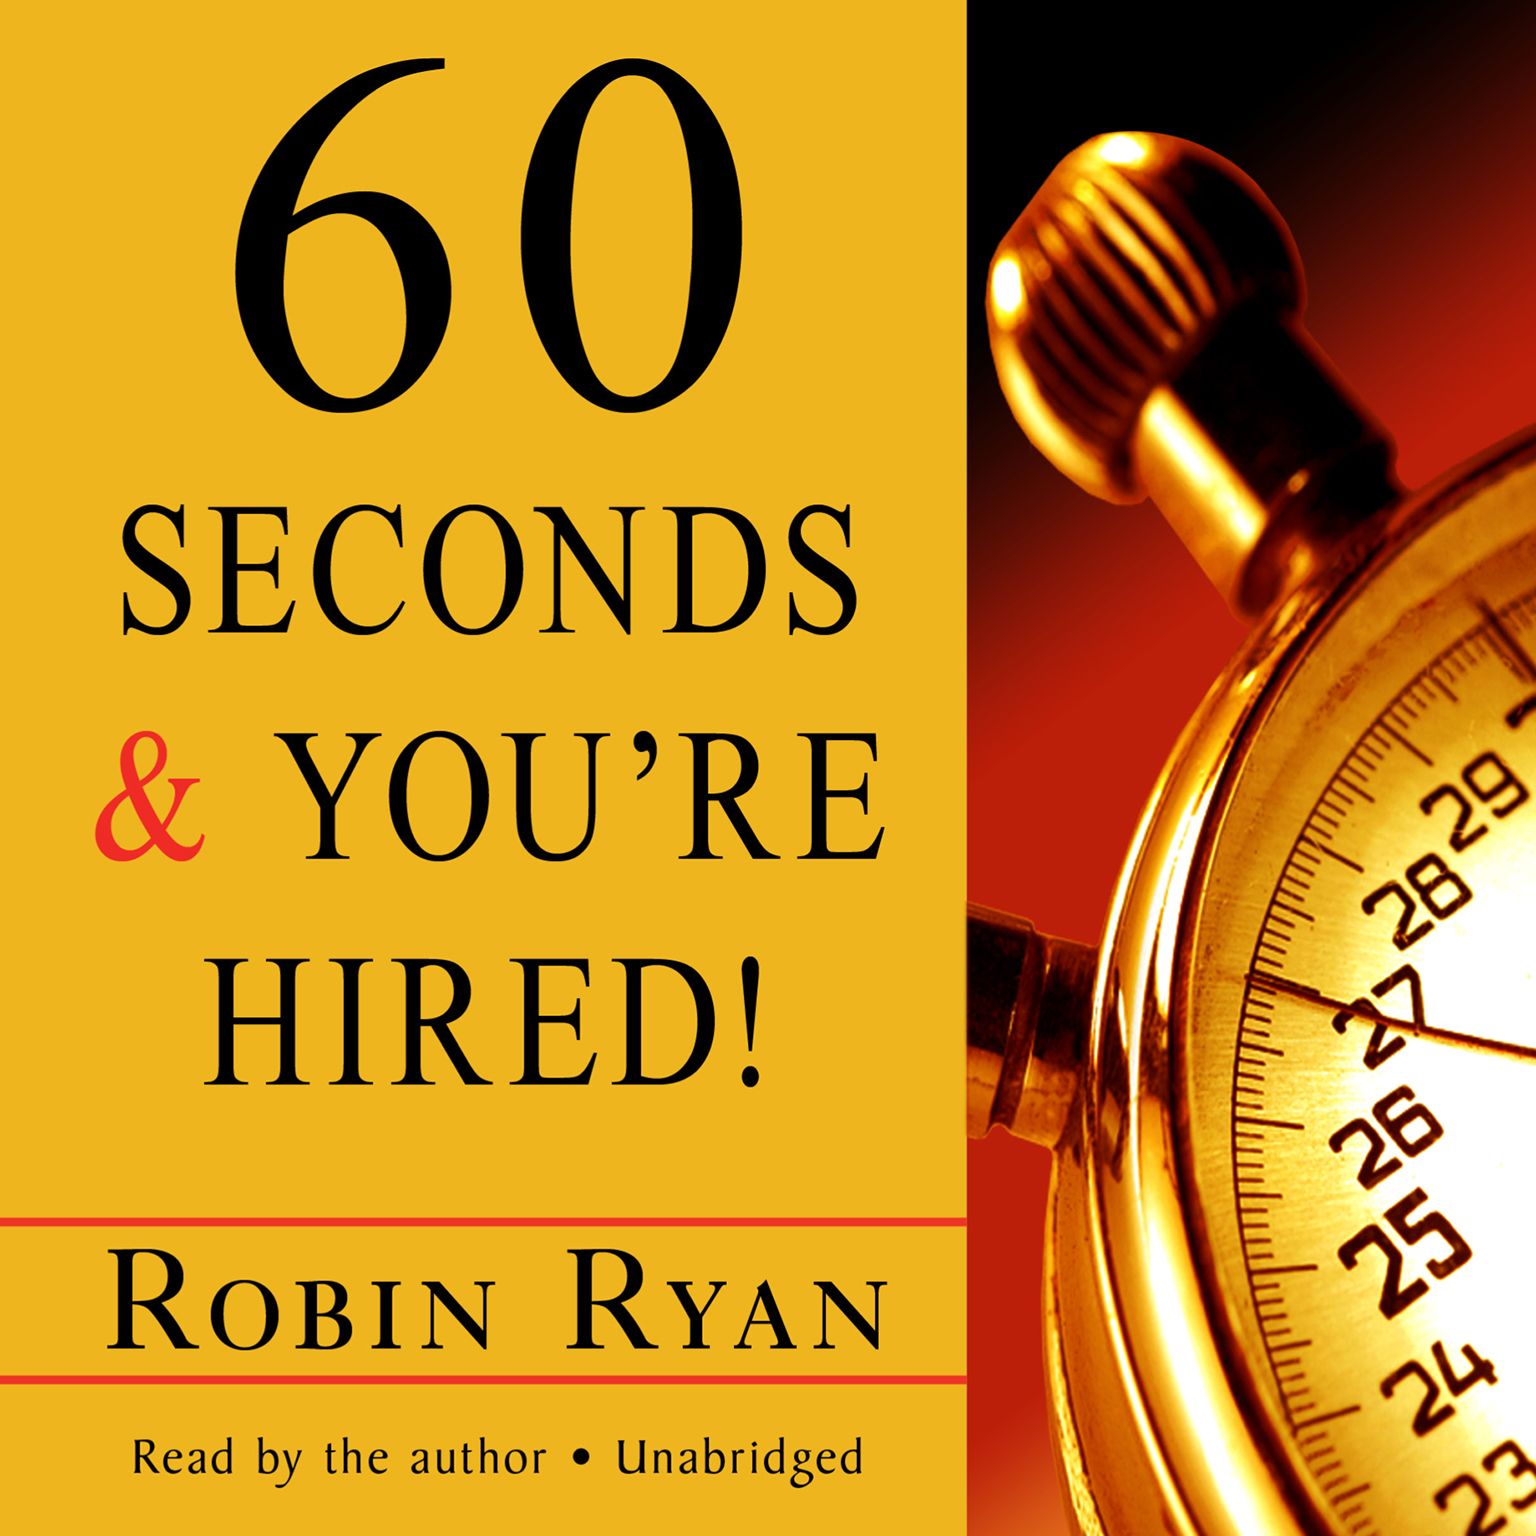 60 Seconds and You're Hired! Audiobook, by Robin Ryan